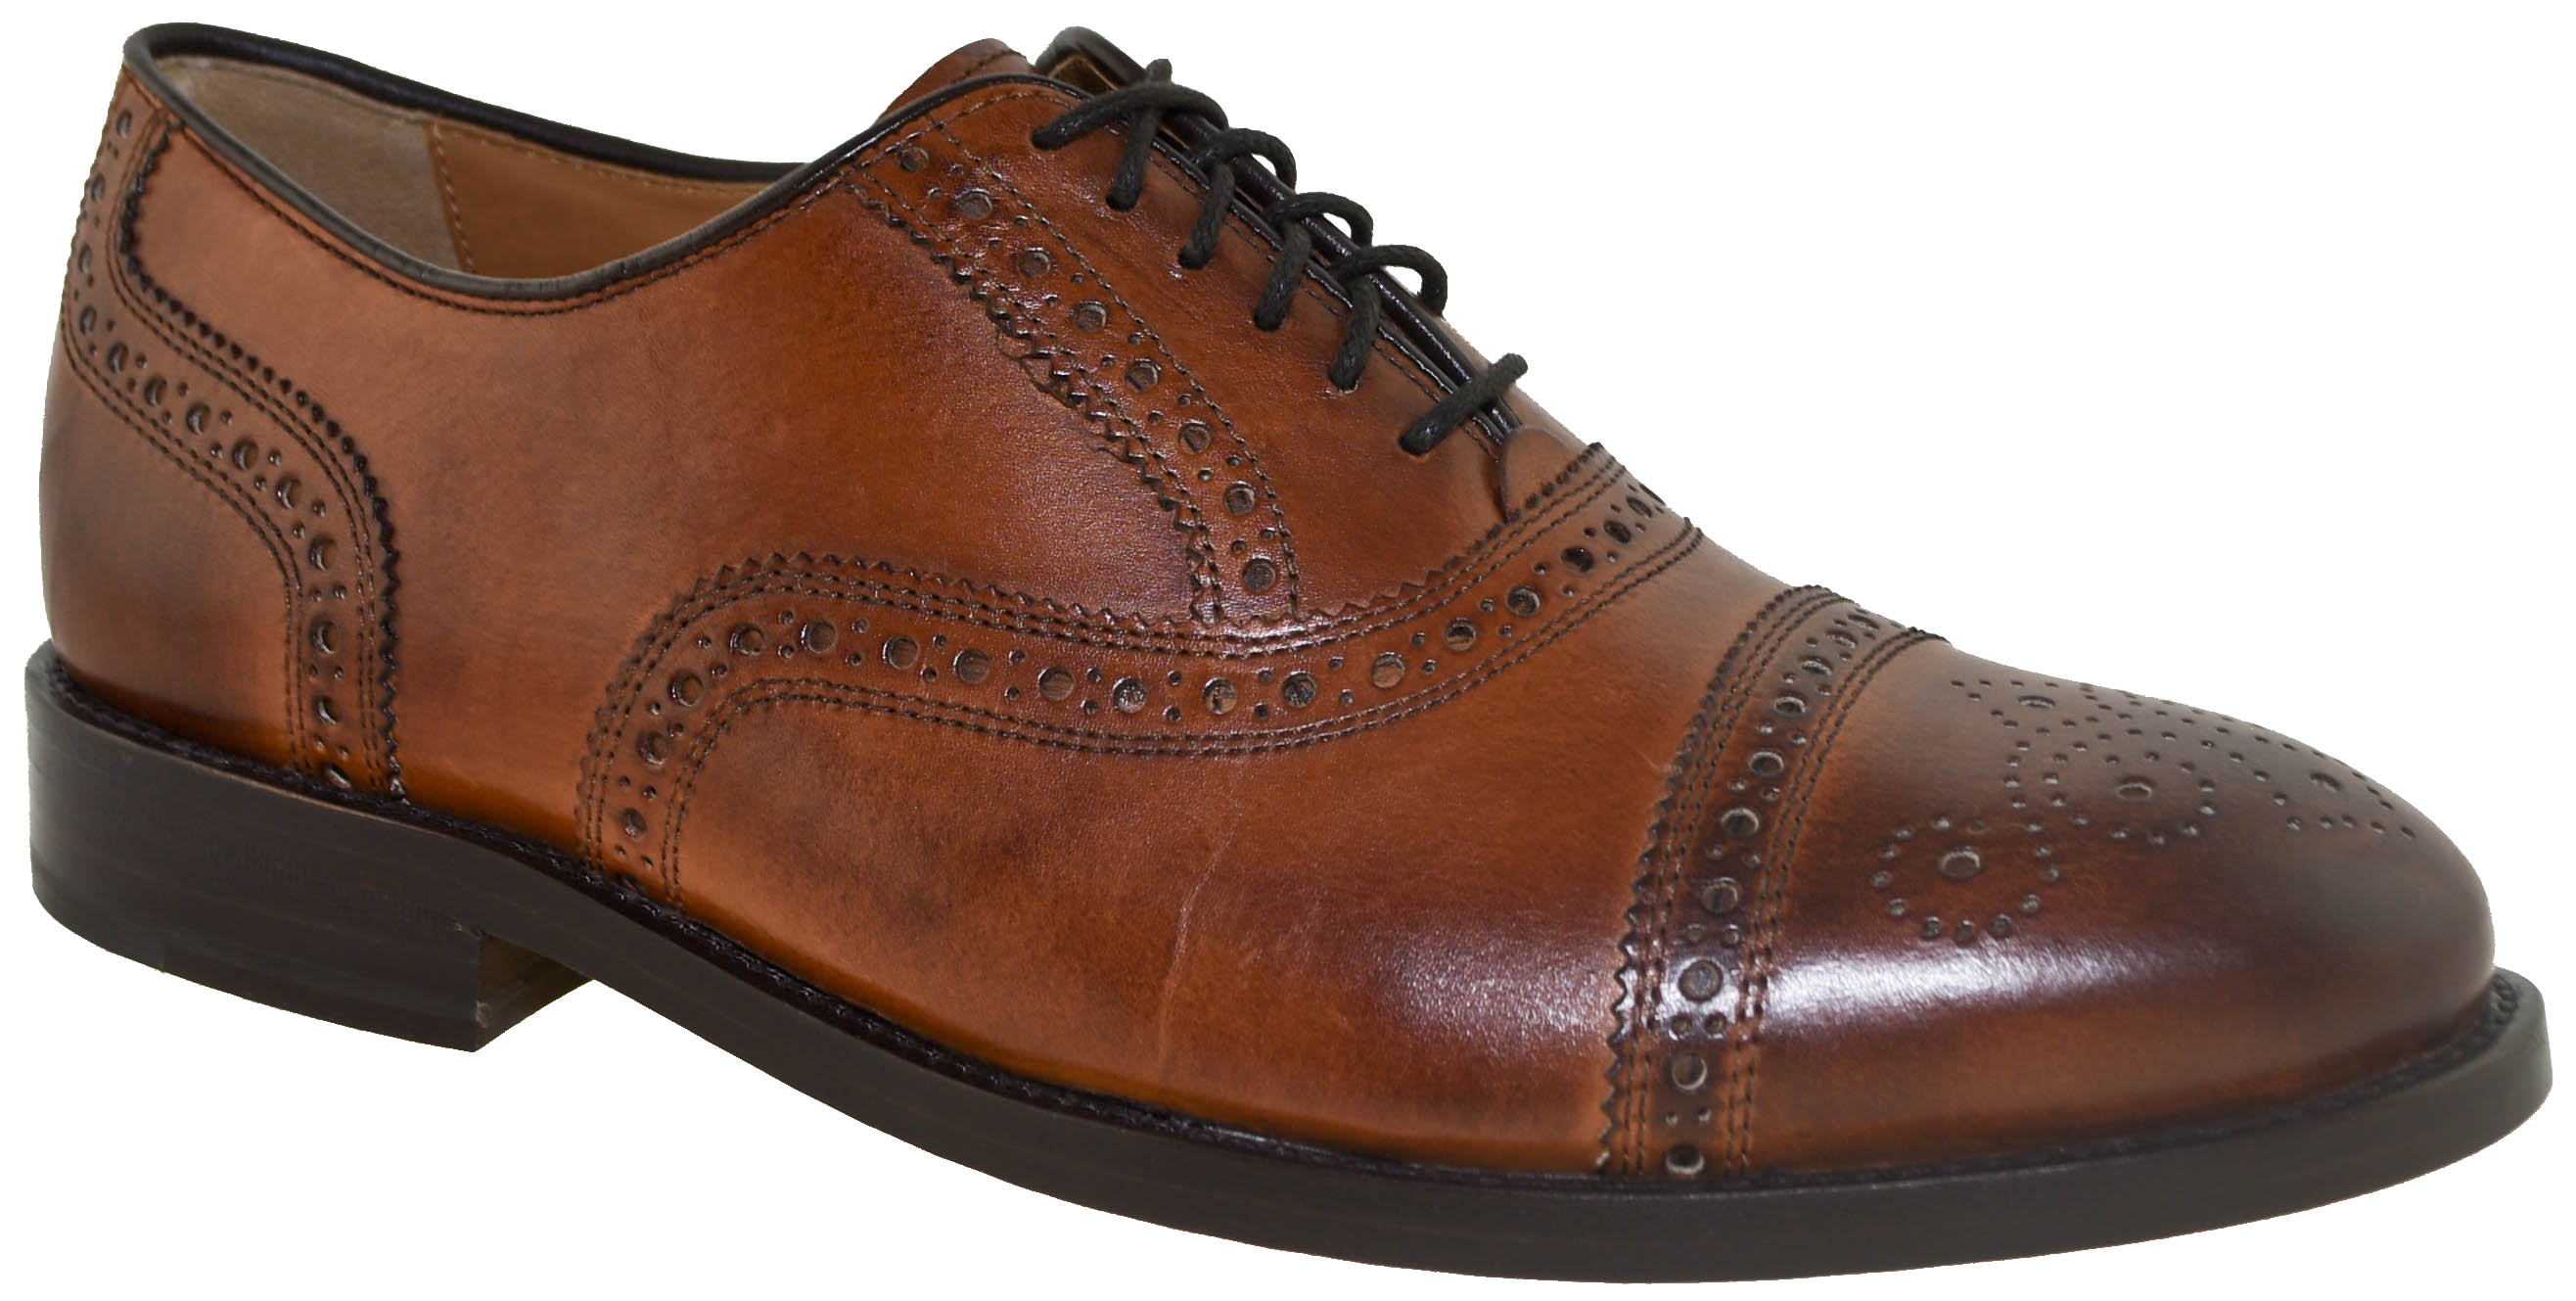 69539696fb27ce Click Thumbnails to Enlarge. Using time-honored, New England-inspired  craftsmanship, our Kneeland Brogue Cap-Toe Oxfords ...